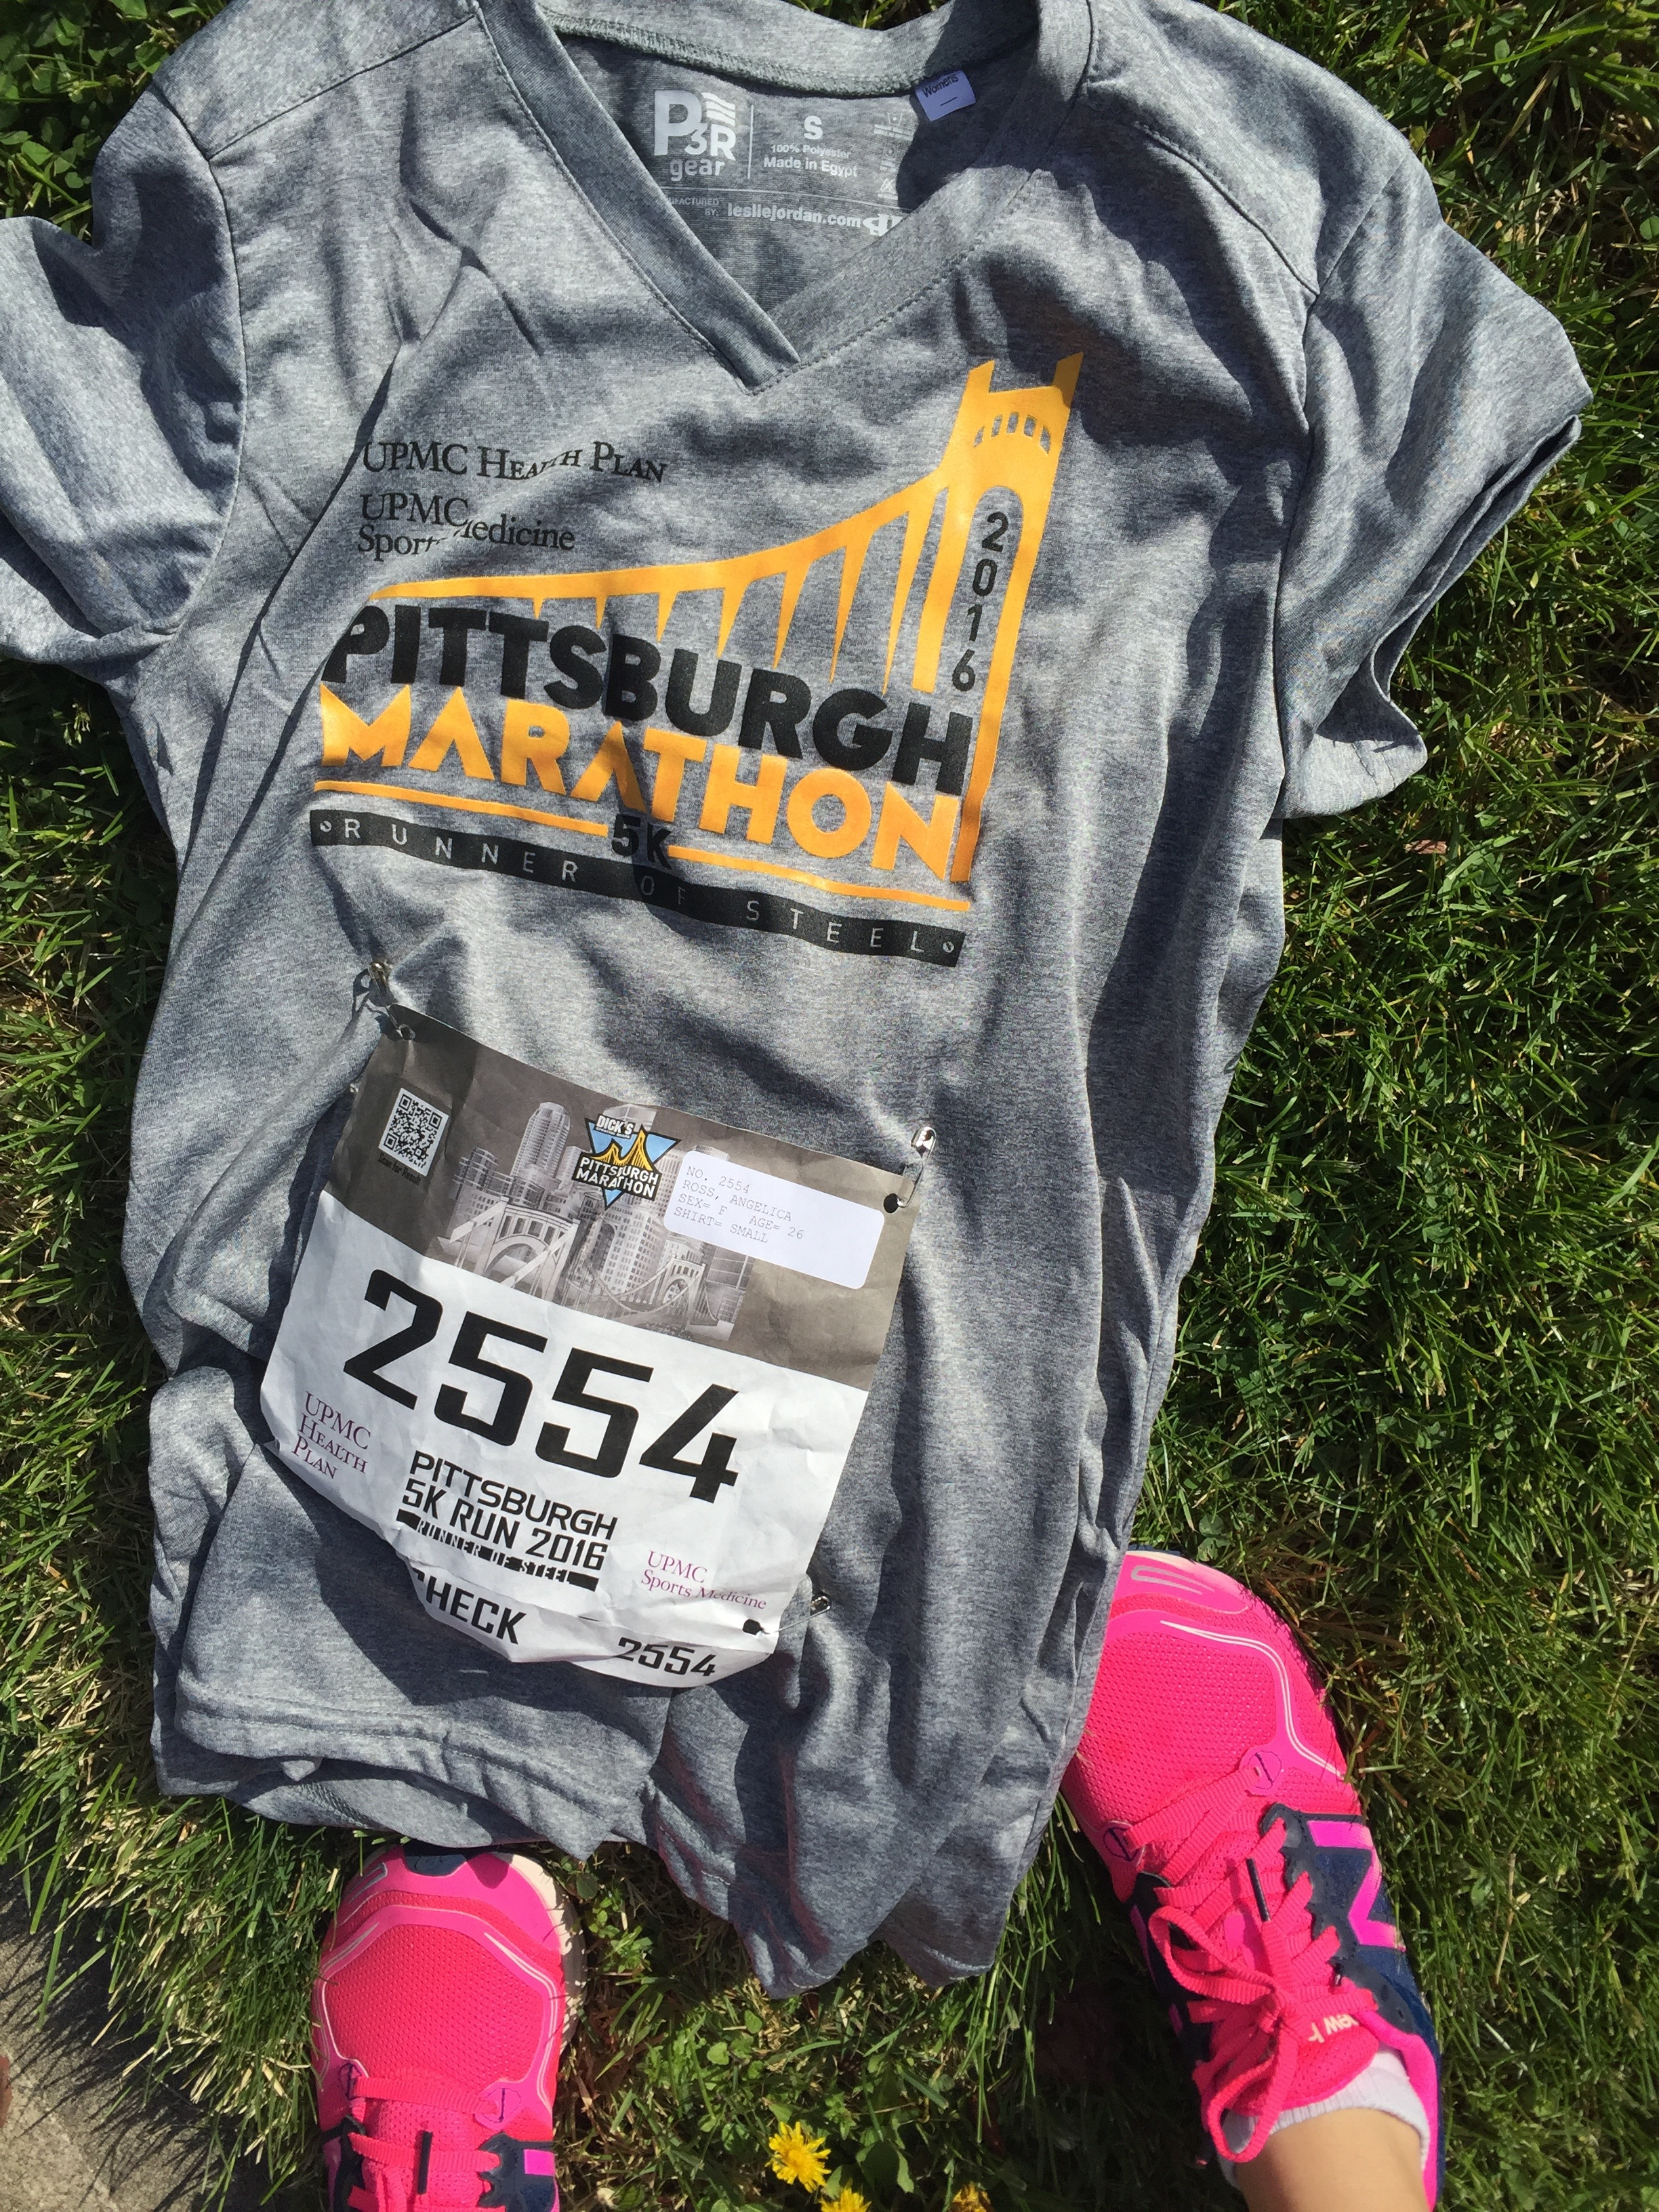 Pittsburgh Marathon 5k 2016 shirts